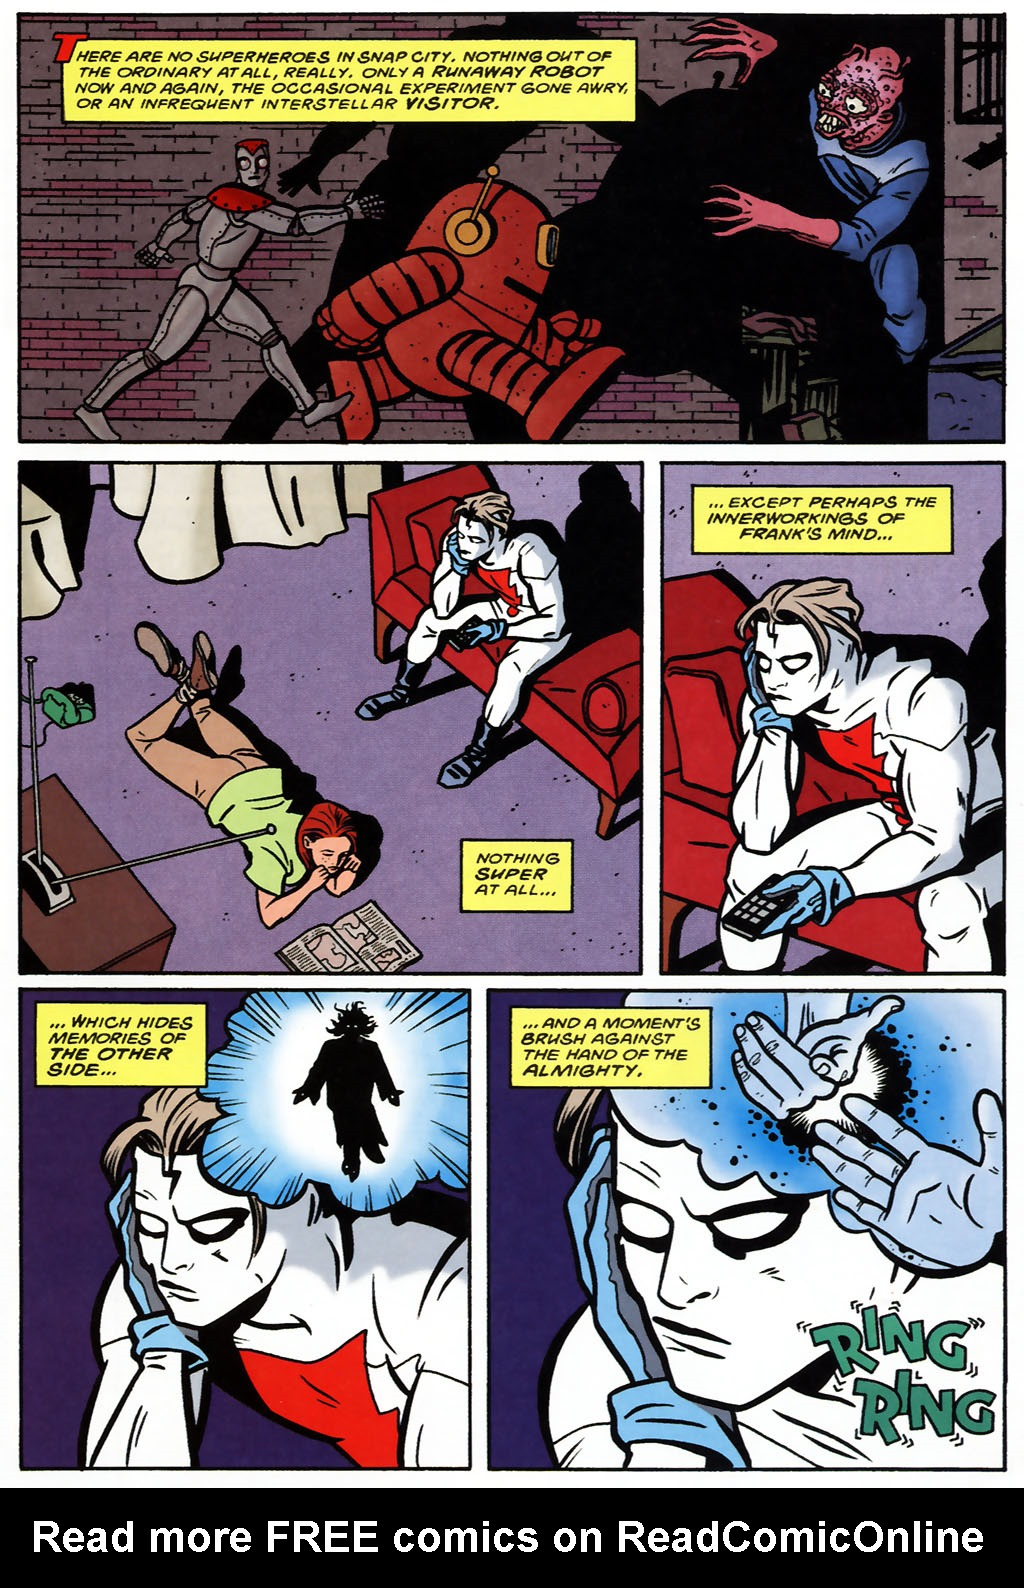 Read Online The Superman Madman Hullabaloo Comic Issue 1